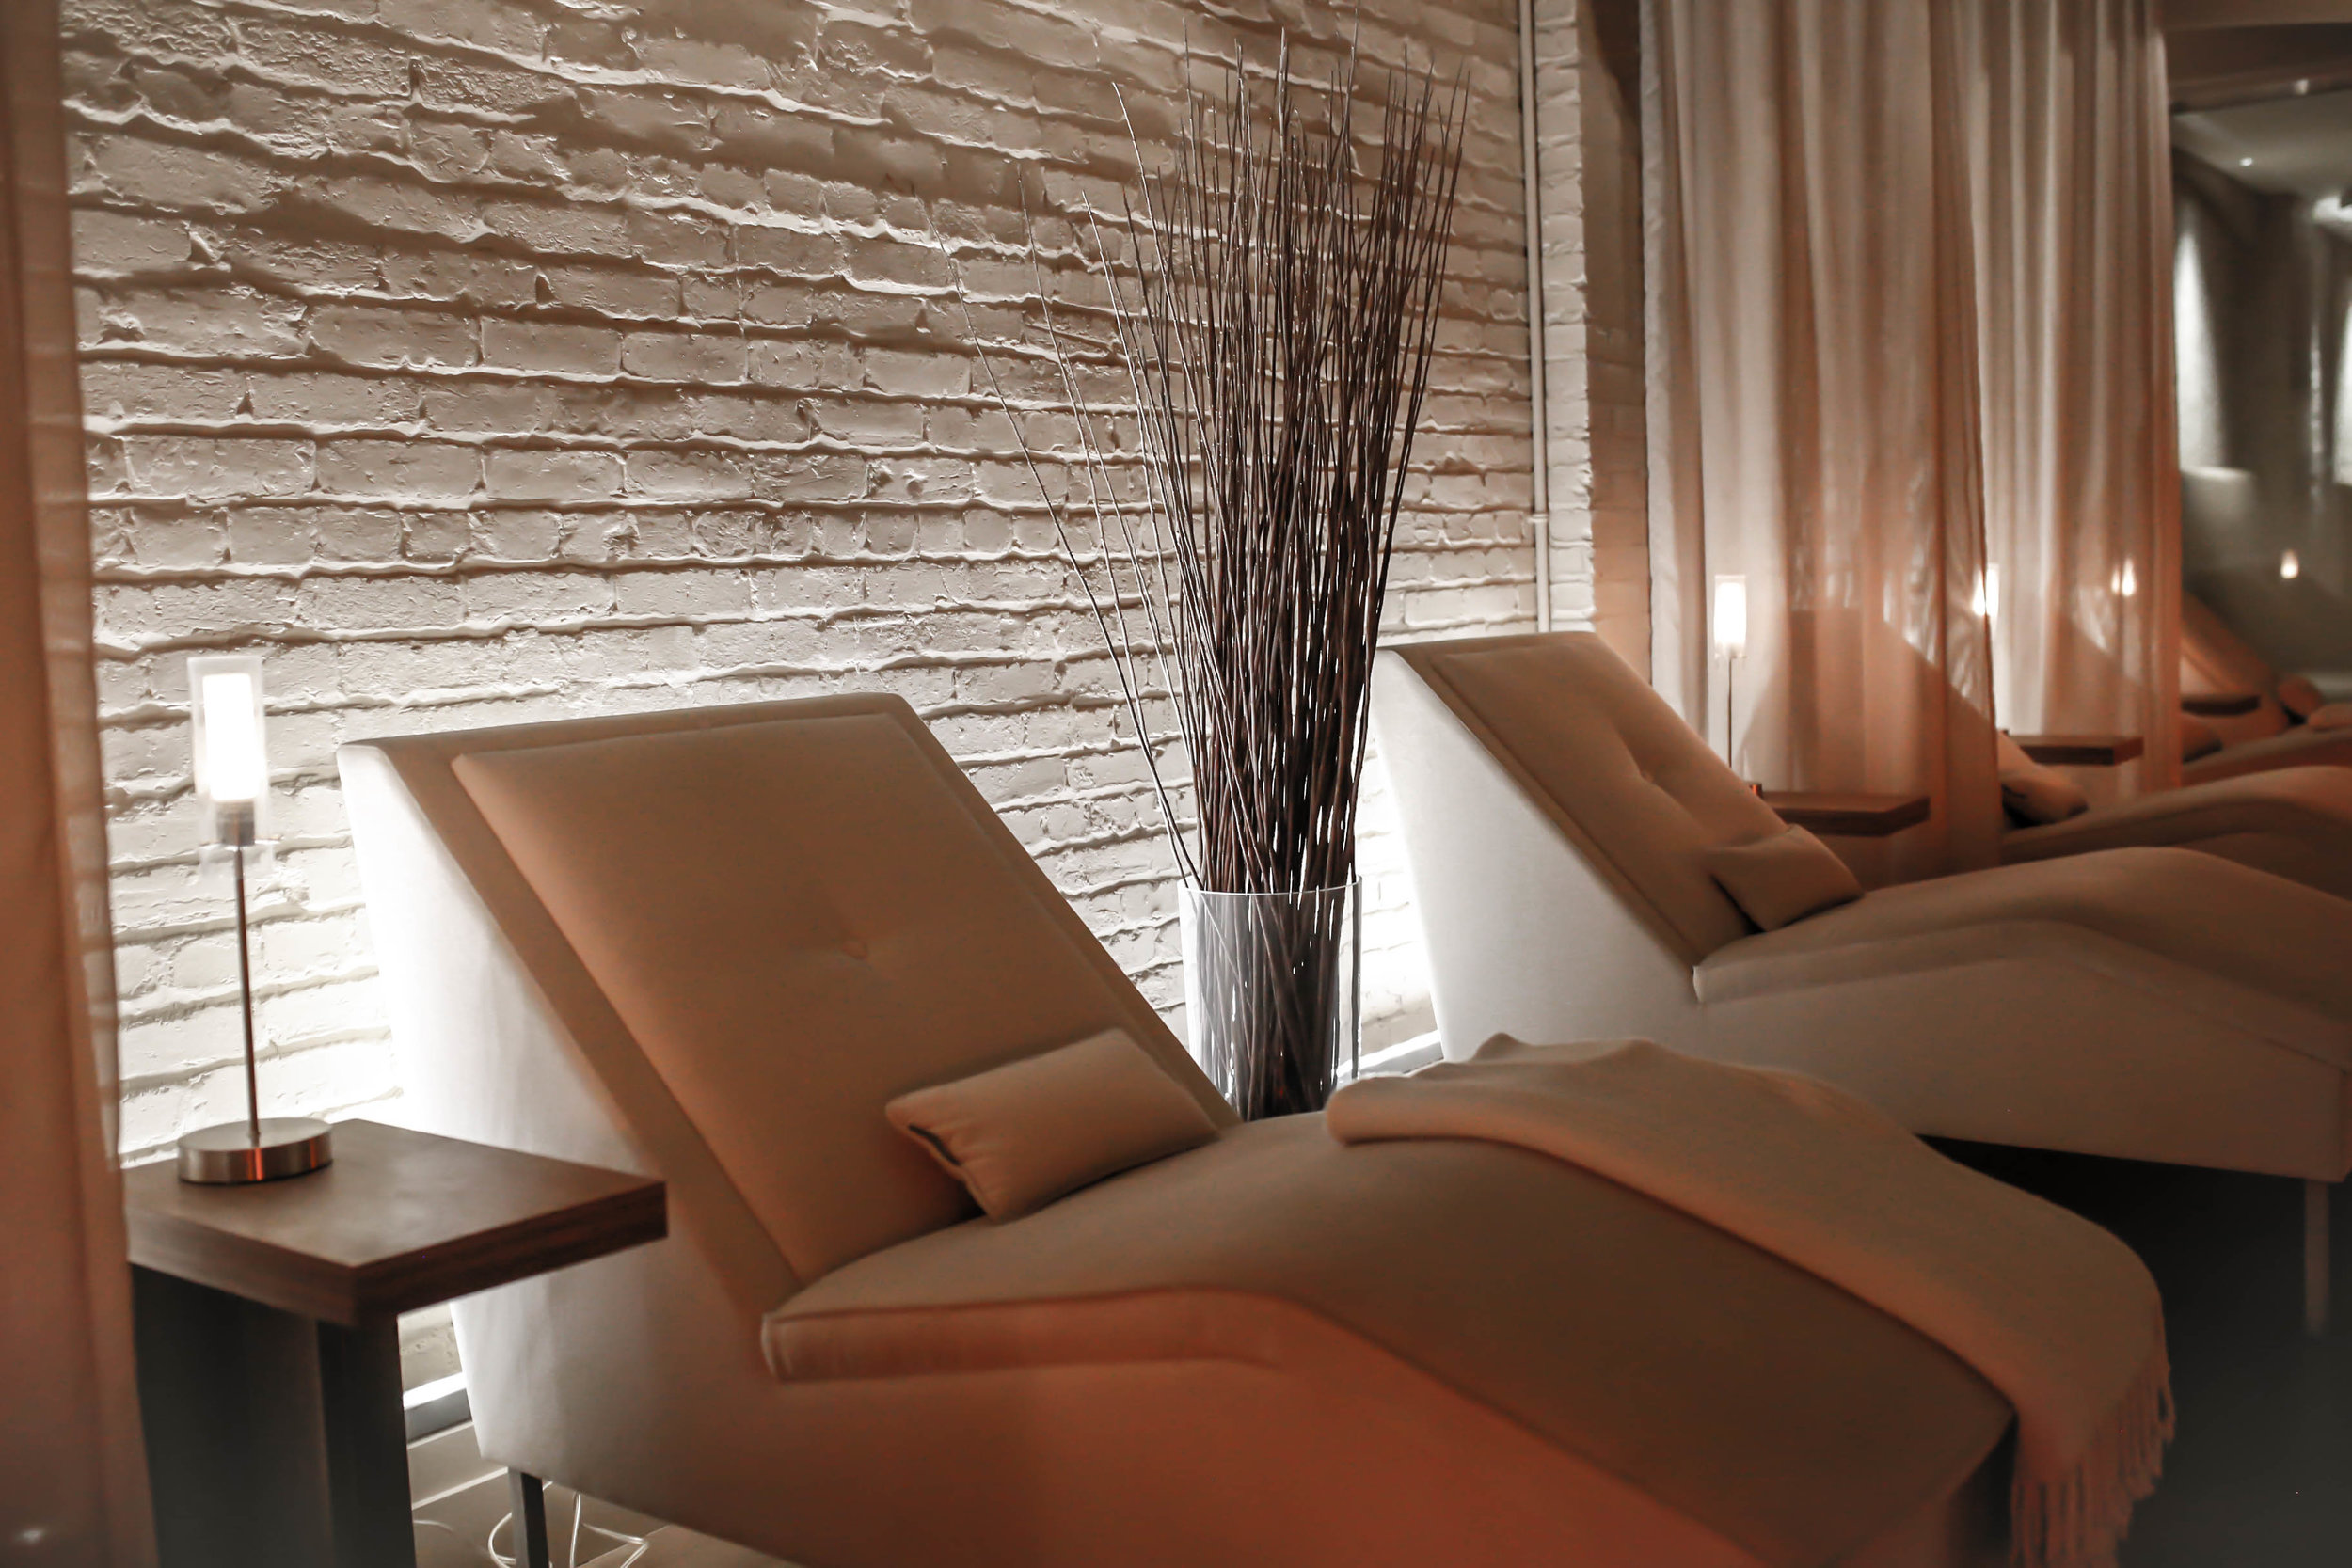 Spa st-james at the ritz carlton in montreal lifestyle blog mlle jules mademoiselle